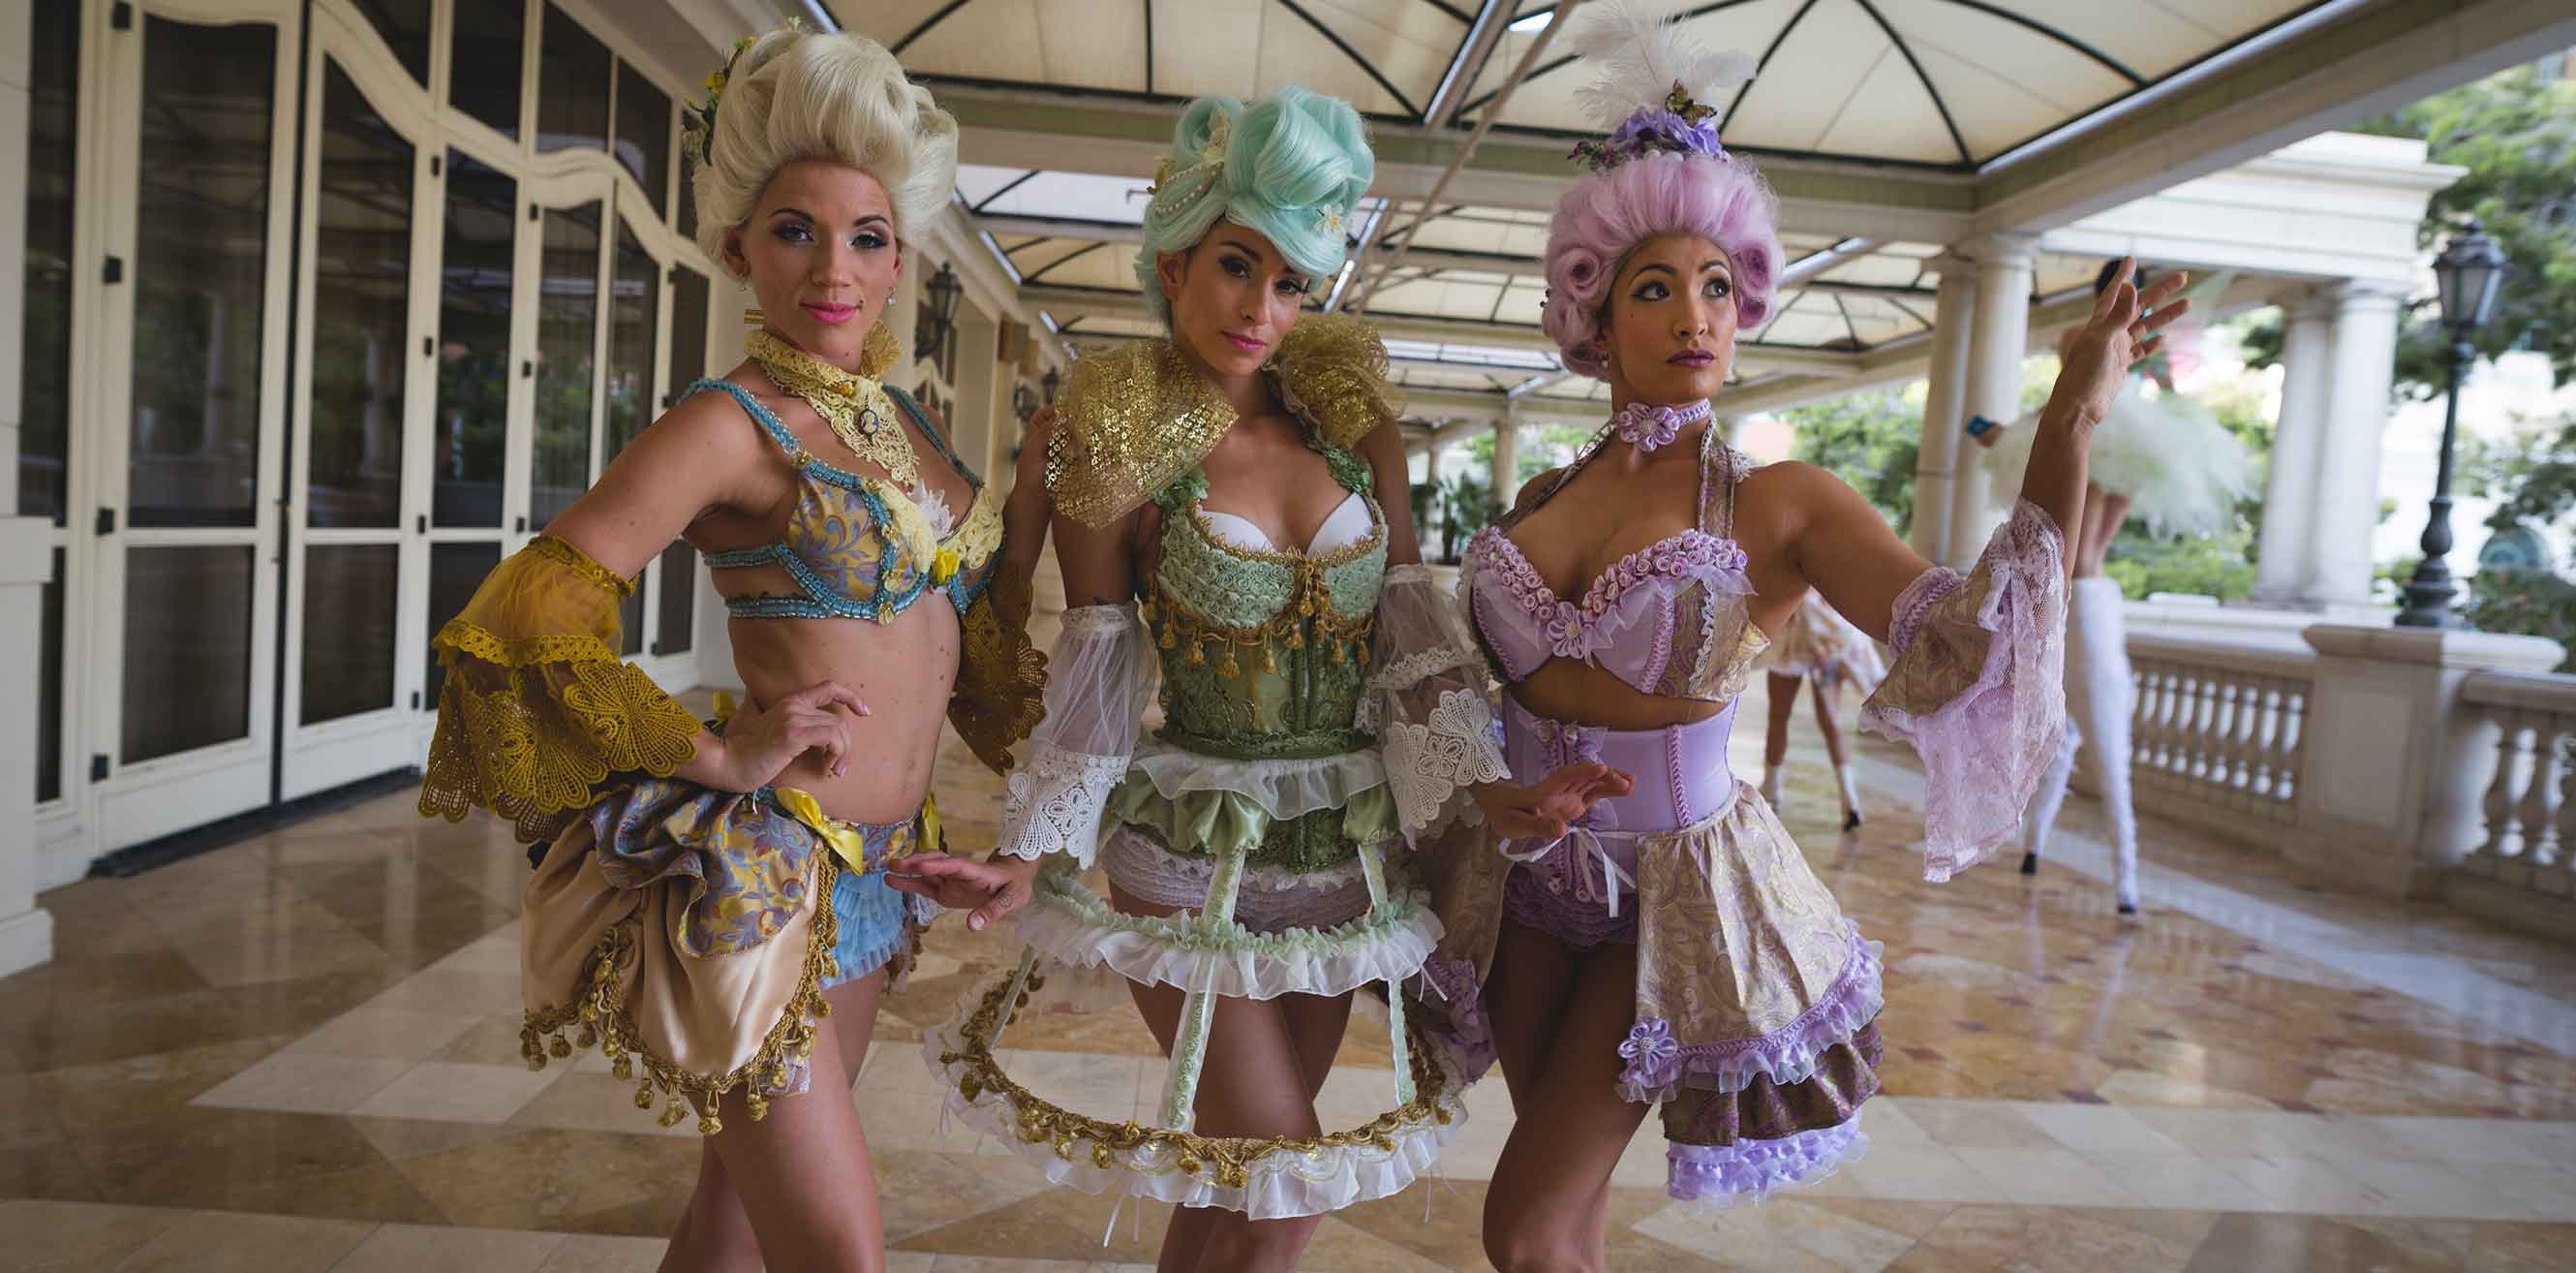 Entertainers in costume